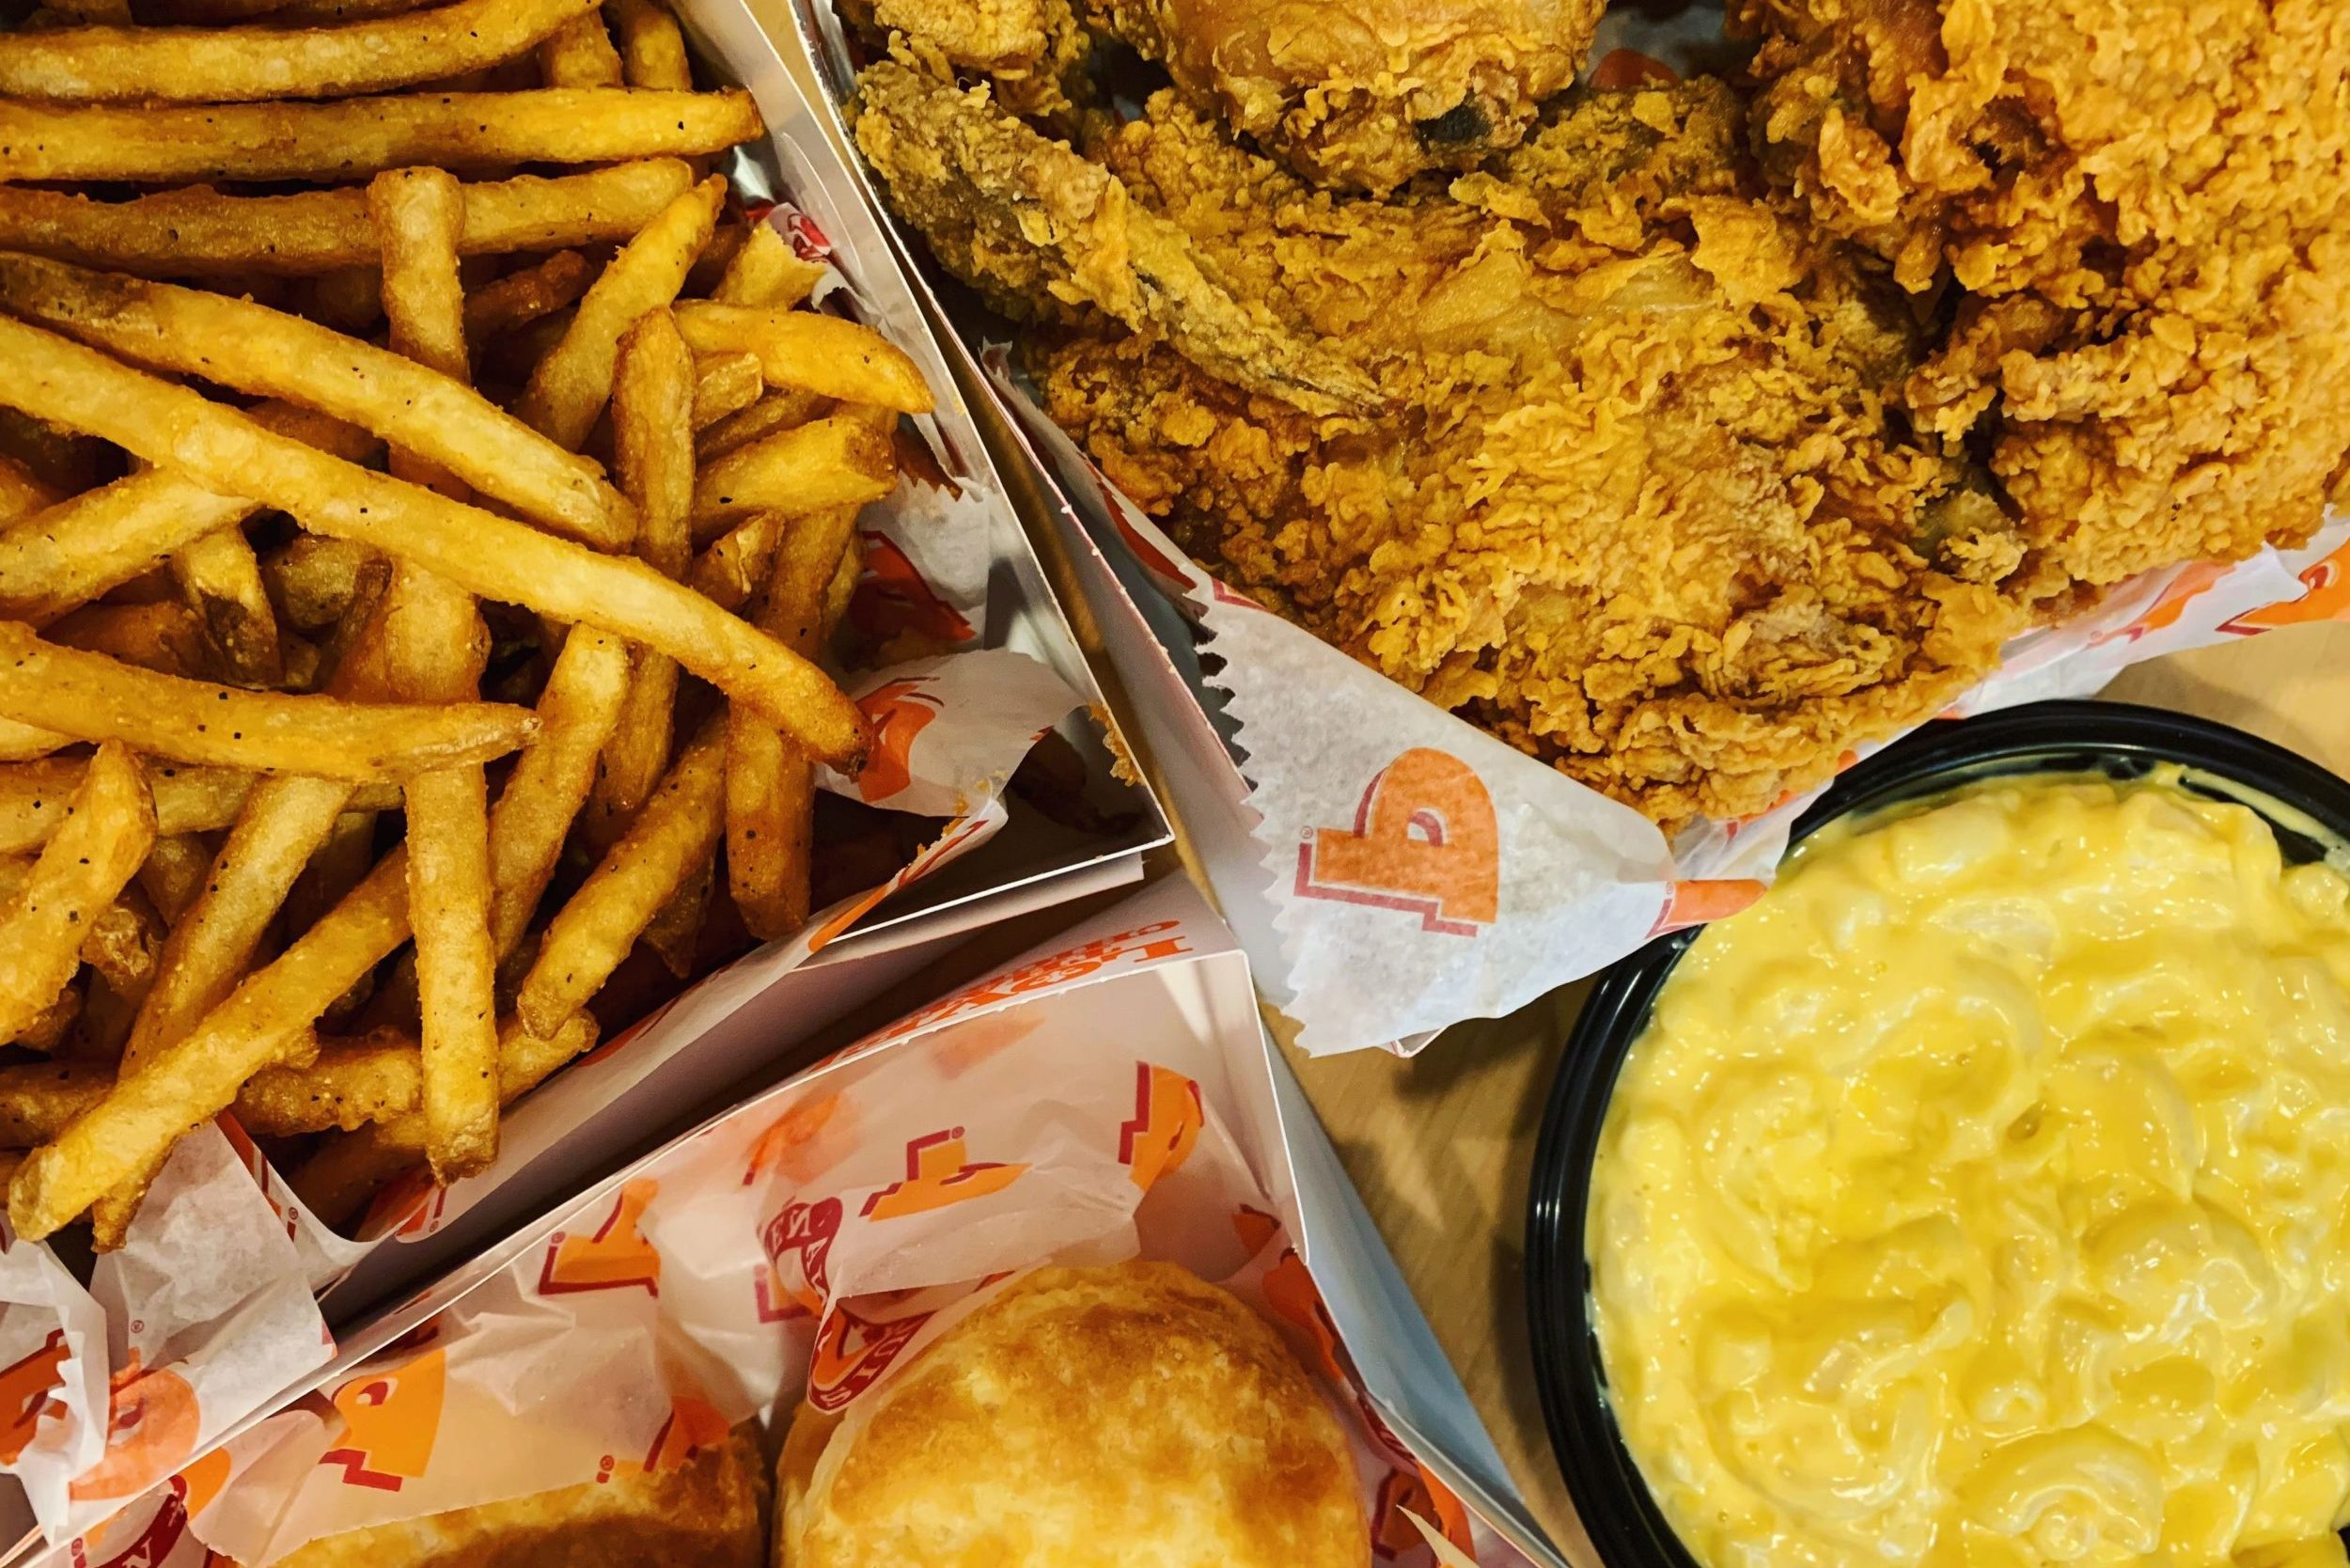 Restaurant Brands International Knows Popeyes Can Do Better